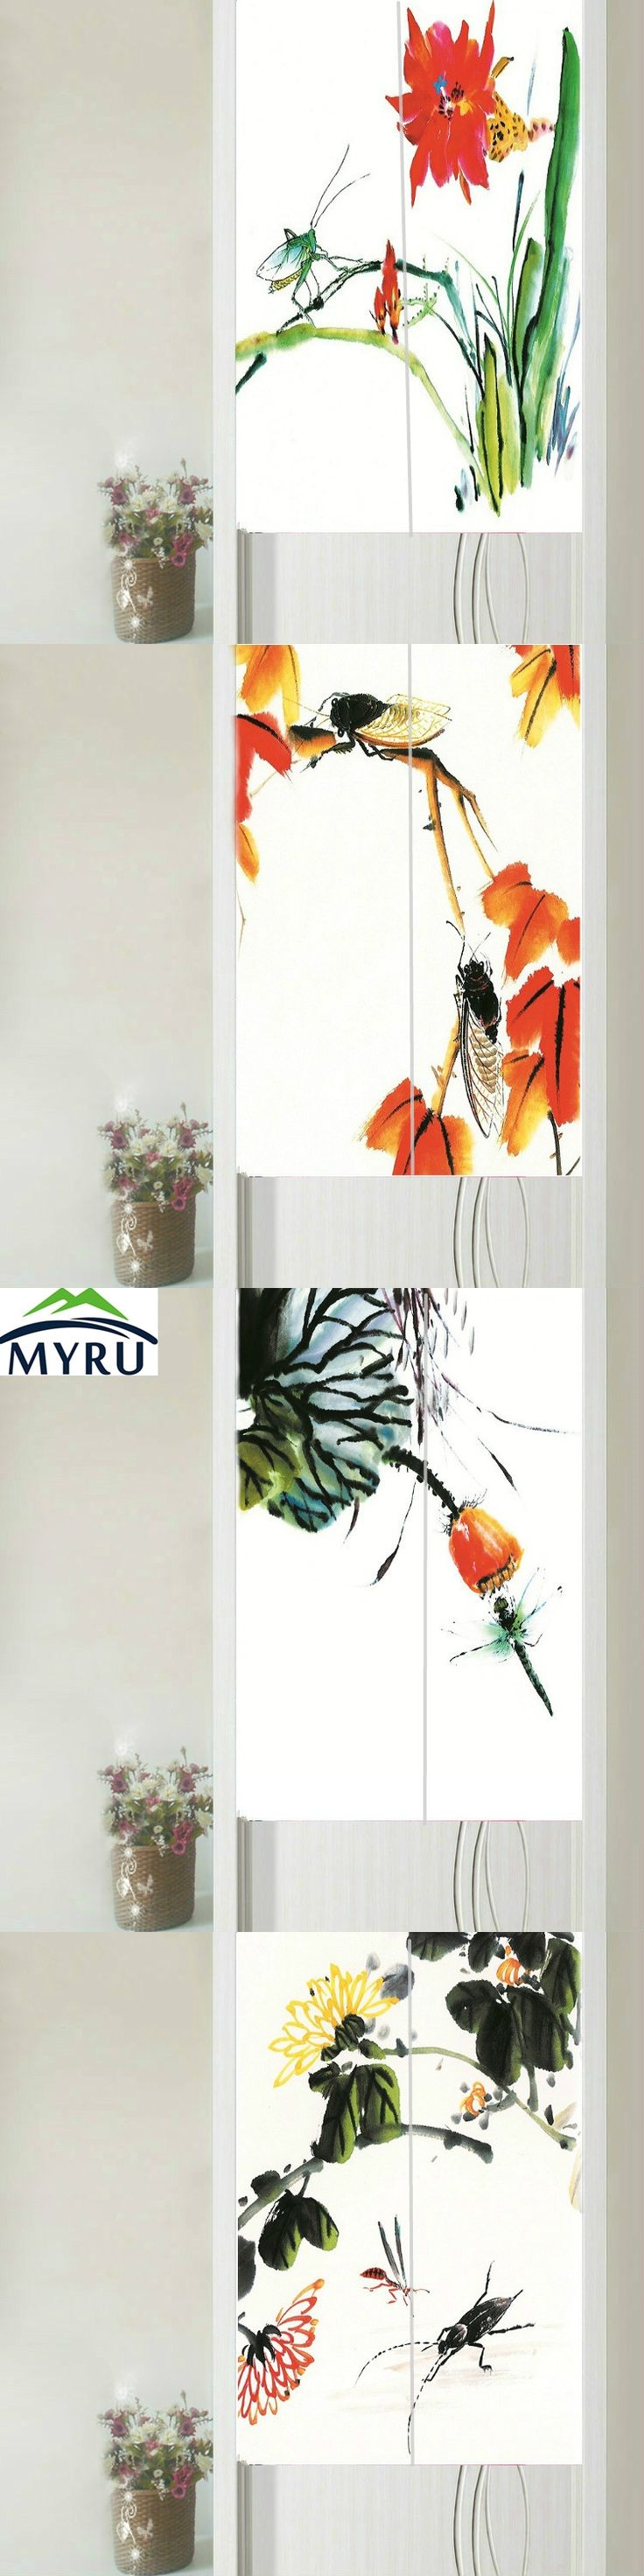 MYRU Chinese Style Wash Painting Flower&insect Series Door Curtain  Partition Household Geomantic Curtain 85x150cm